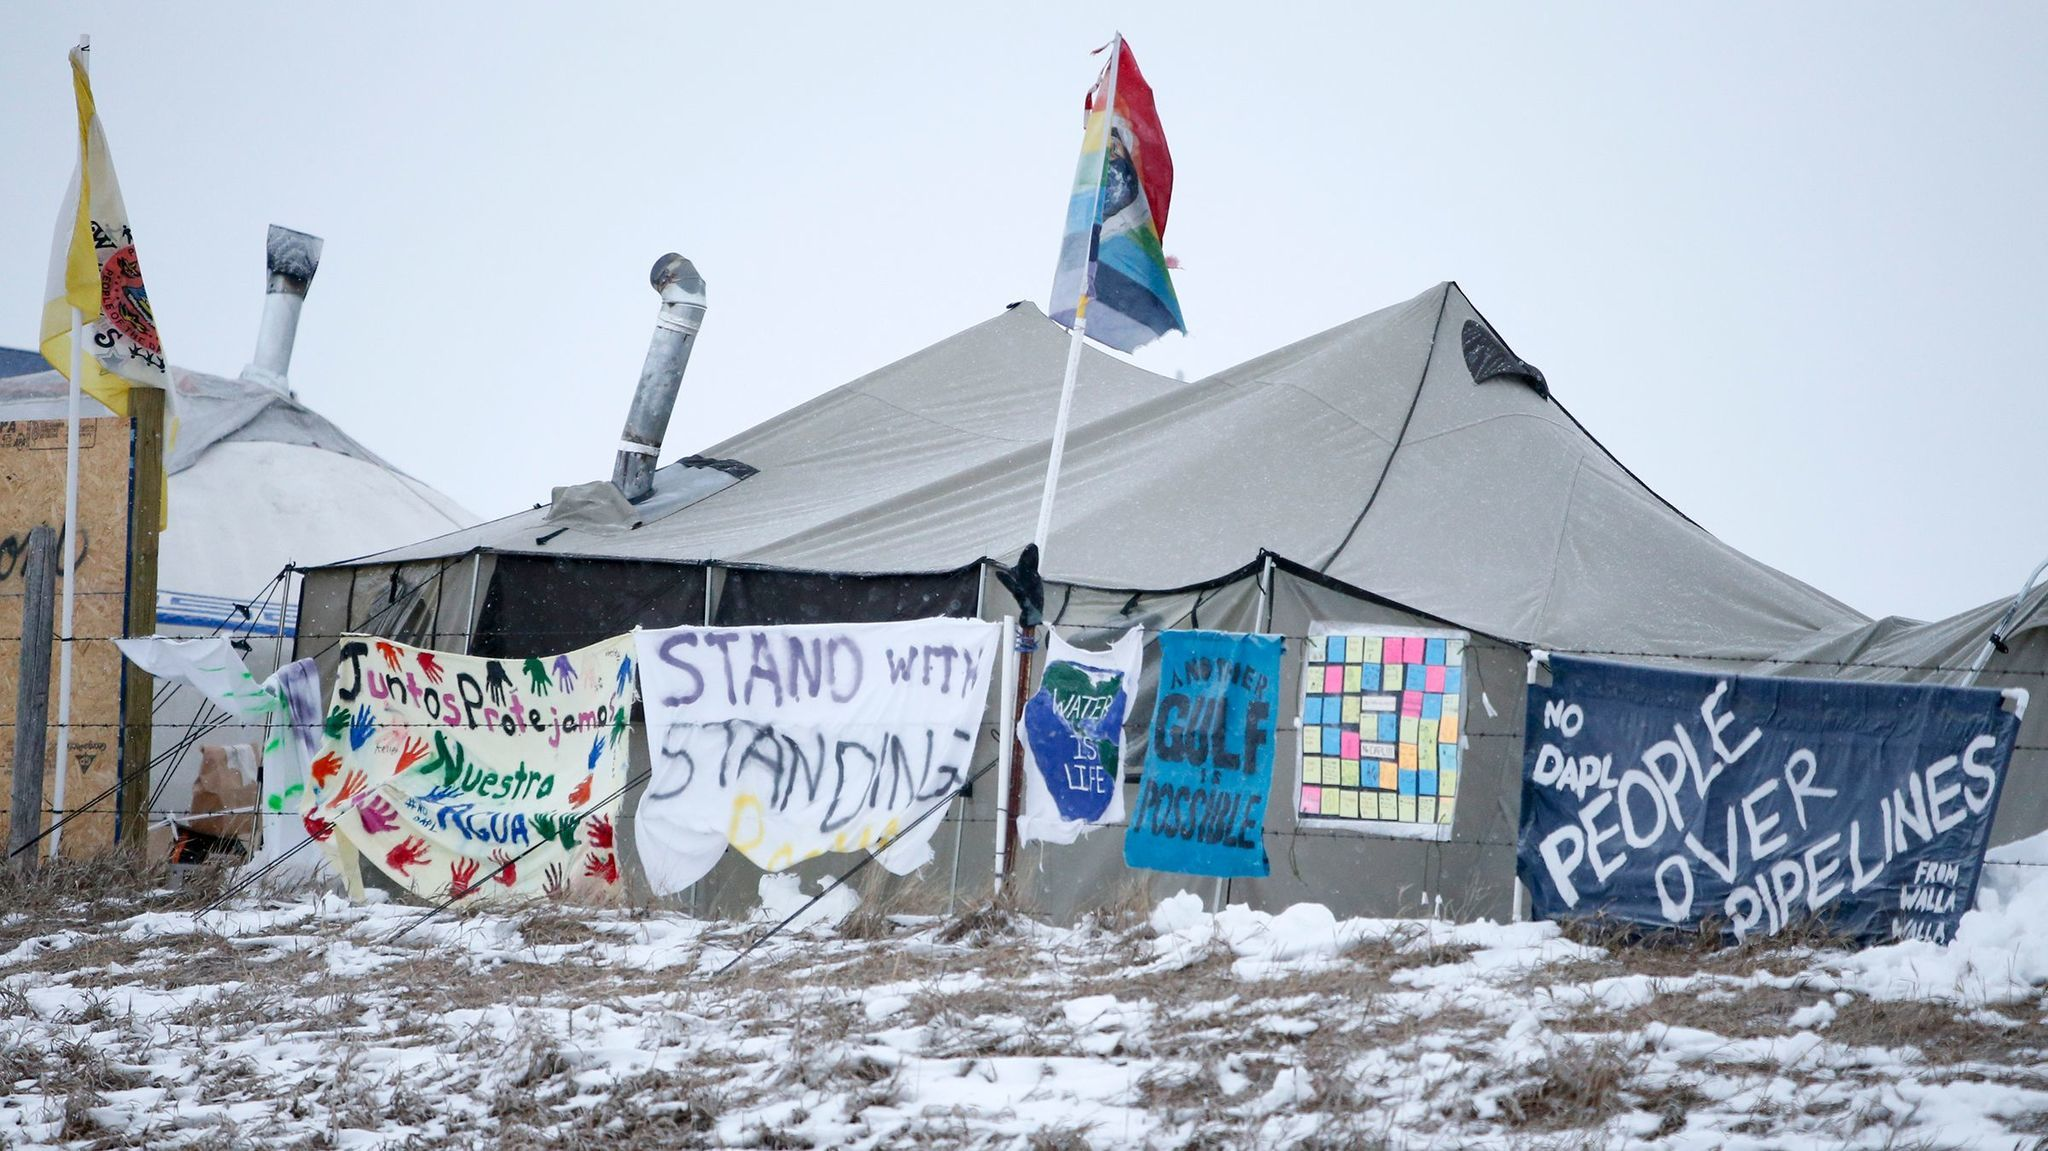 Army Corps to shut down Dakota Access protest camp — but activists vow to keep up resistance